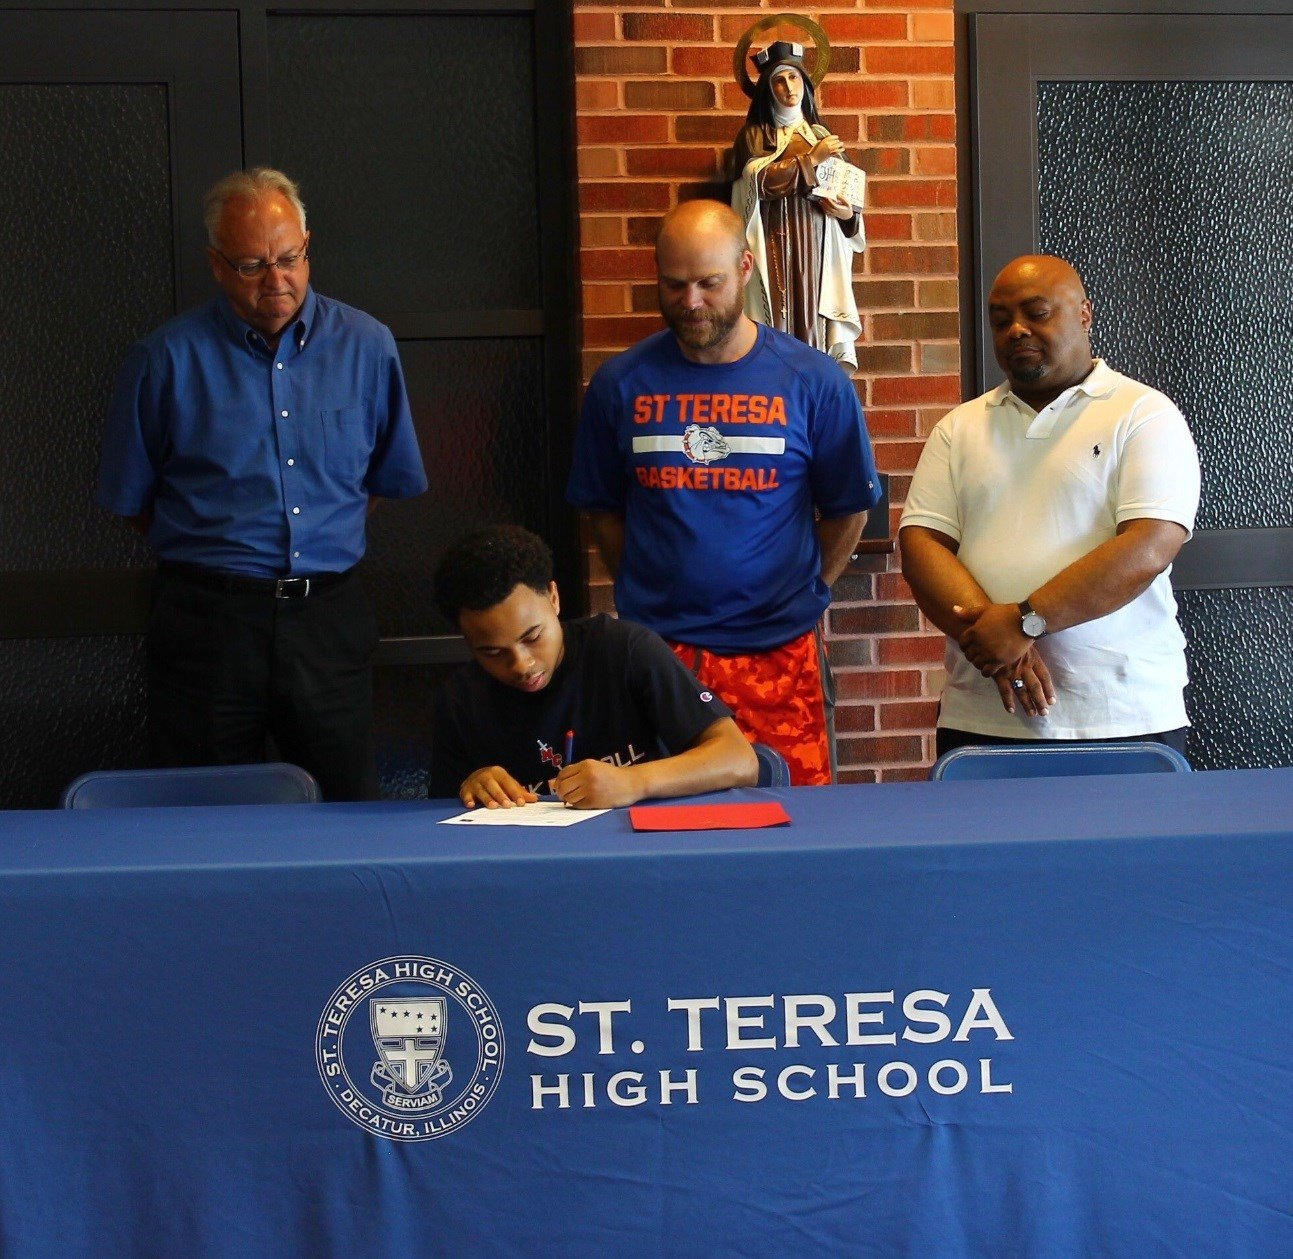 Manny Green signs with MacMurray College's basketball program on Thursday morning at St. Teresa High School. (photo: St. Teresa)